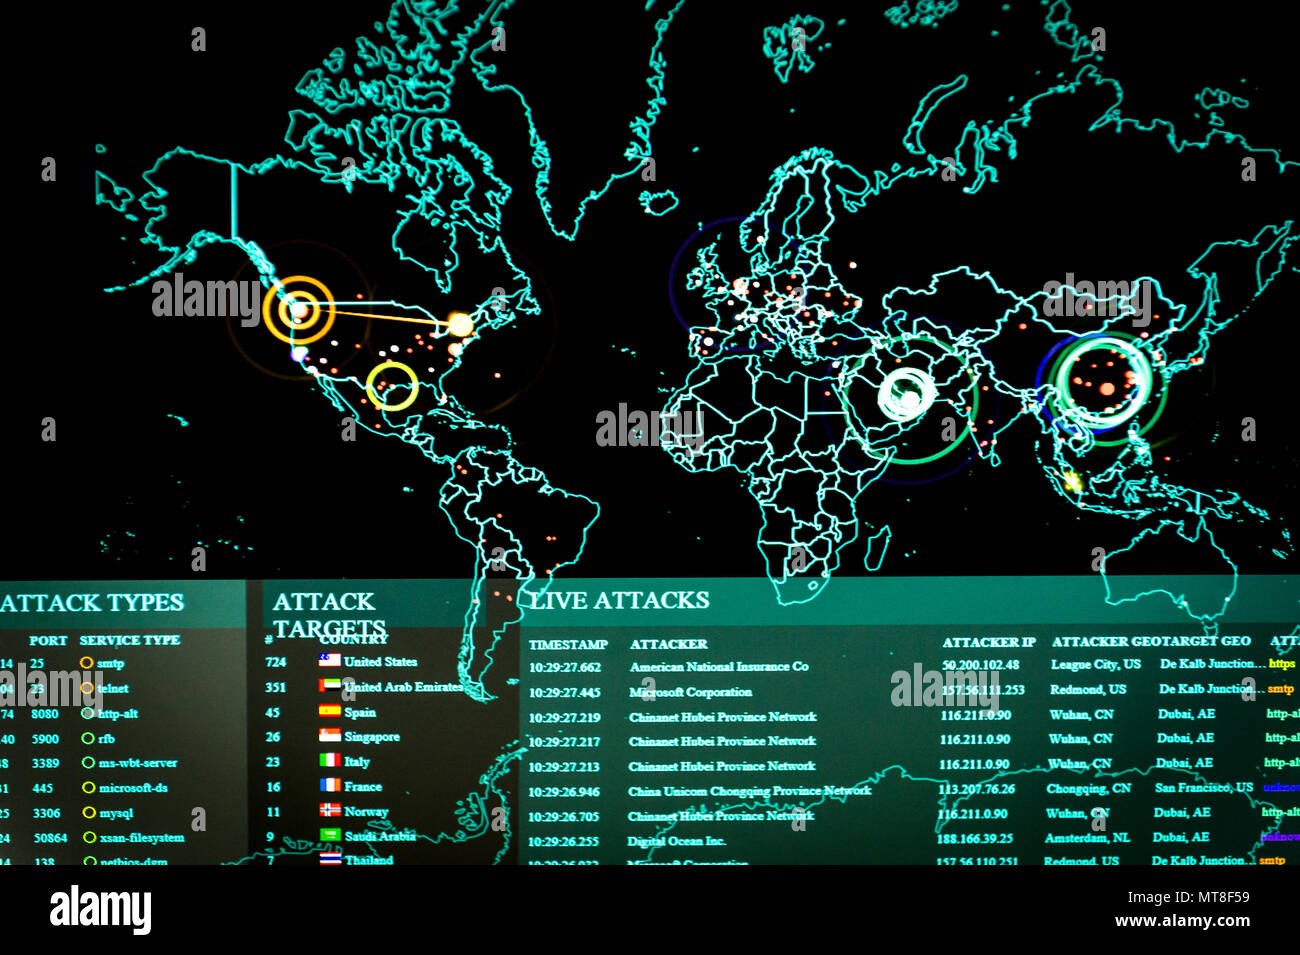 Real Time Cyber Attacks Including Information On The